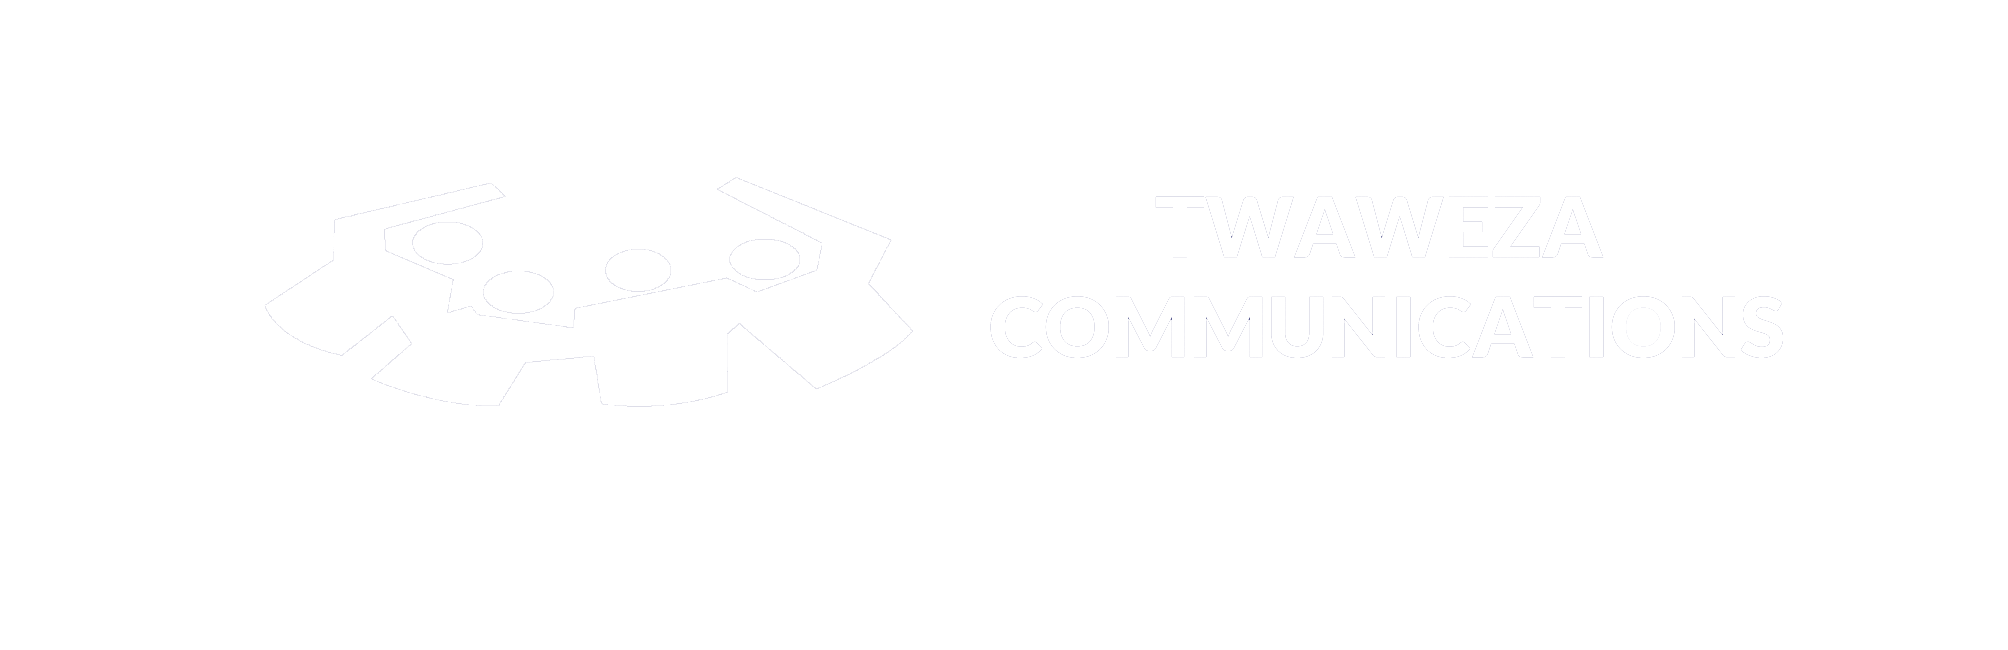 Twaweza Communications Logo